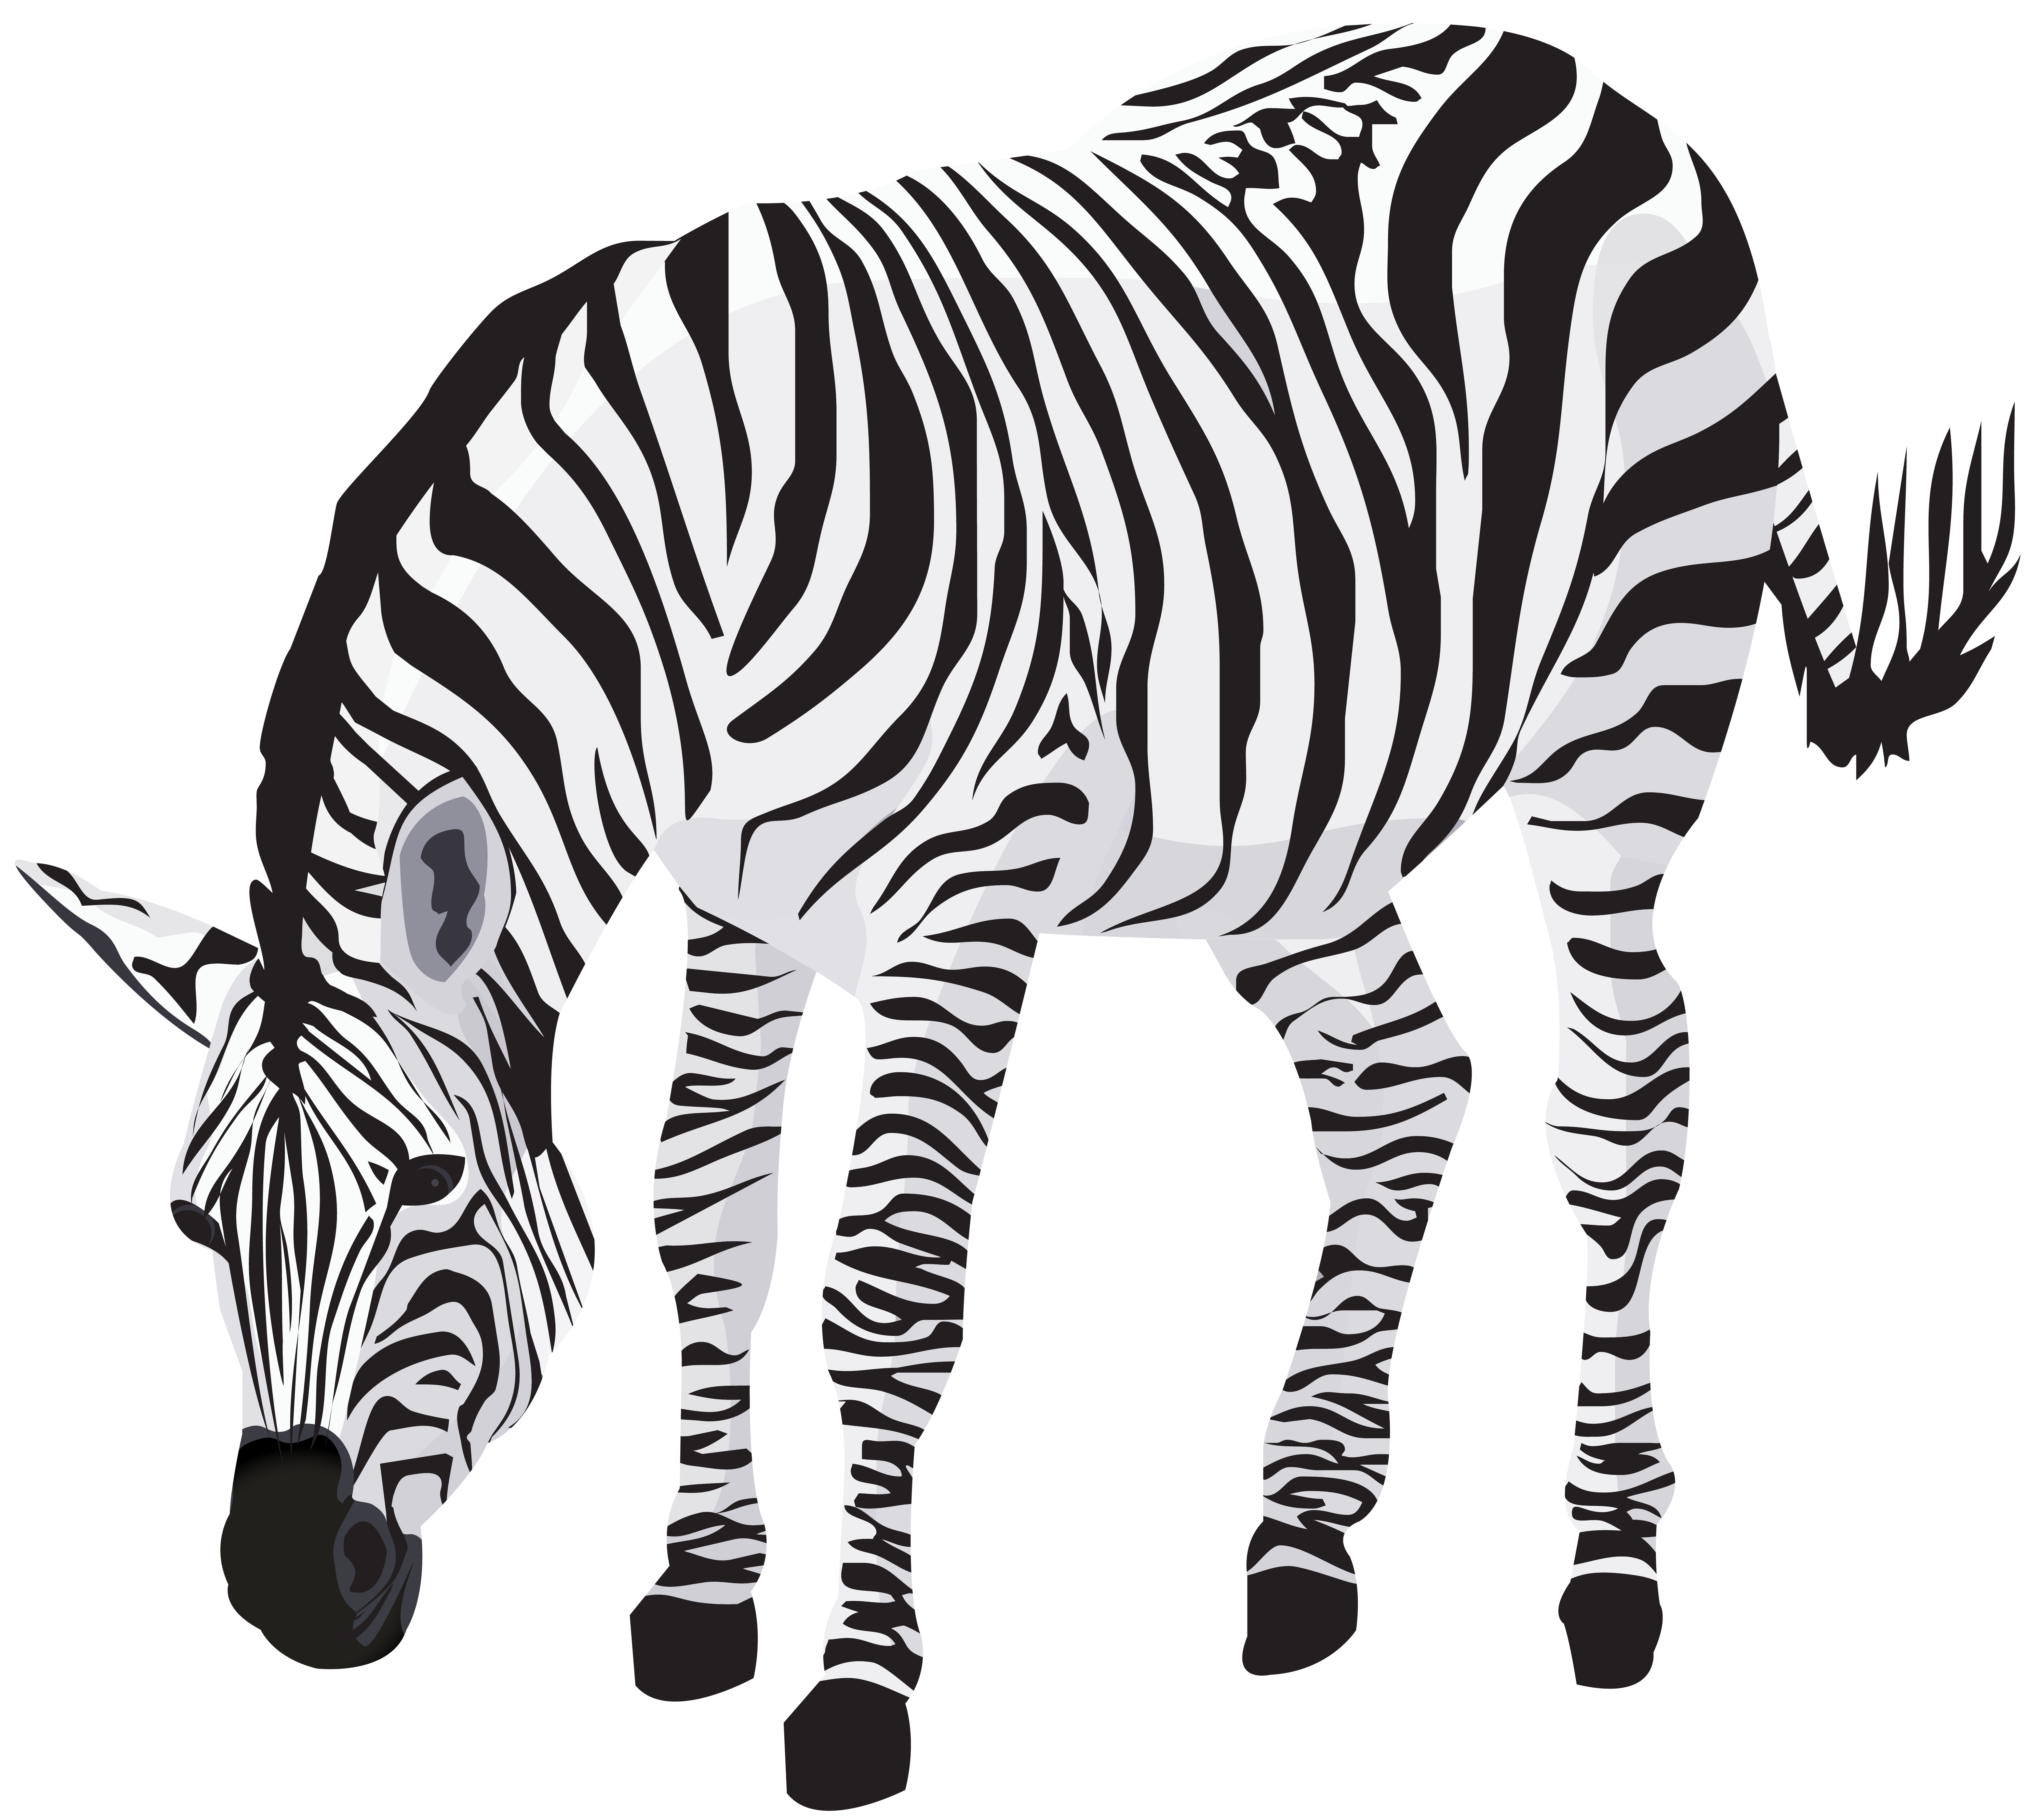 clipart transparent stock Image gallery yopriceville high. Zebra clipart.